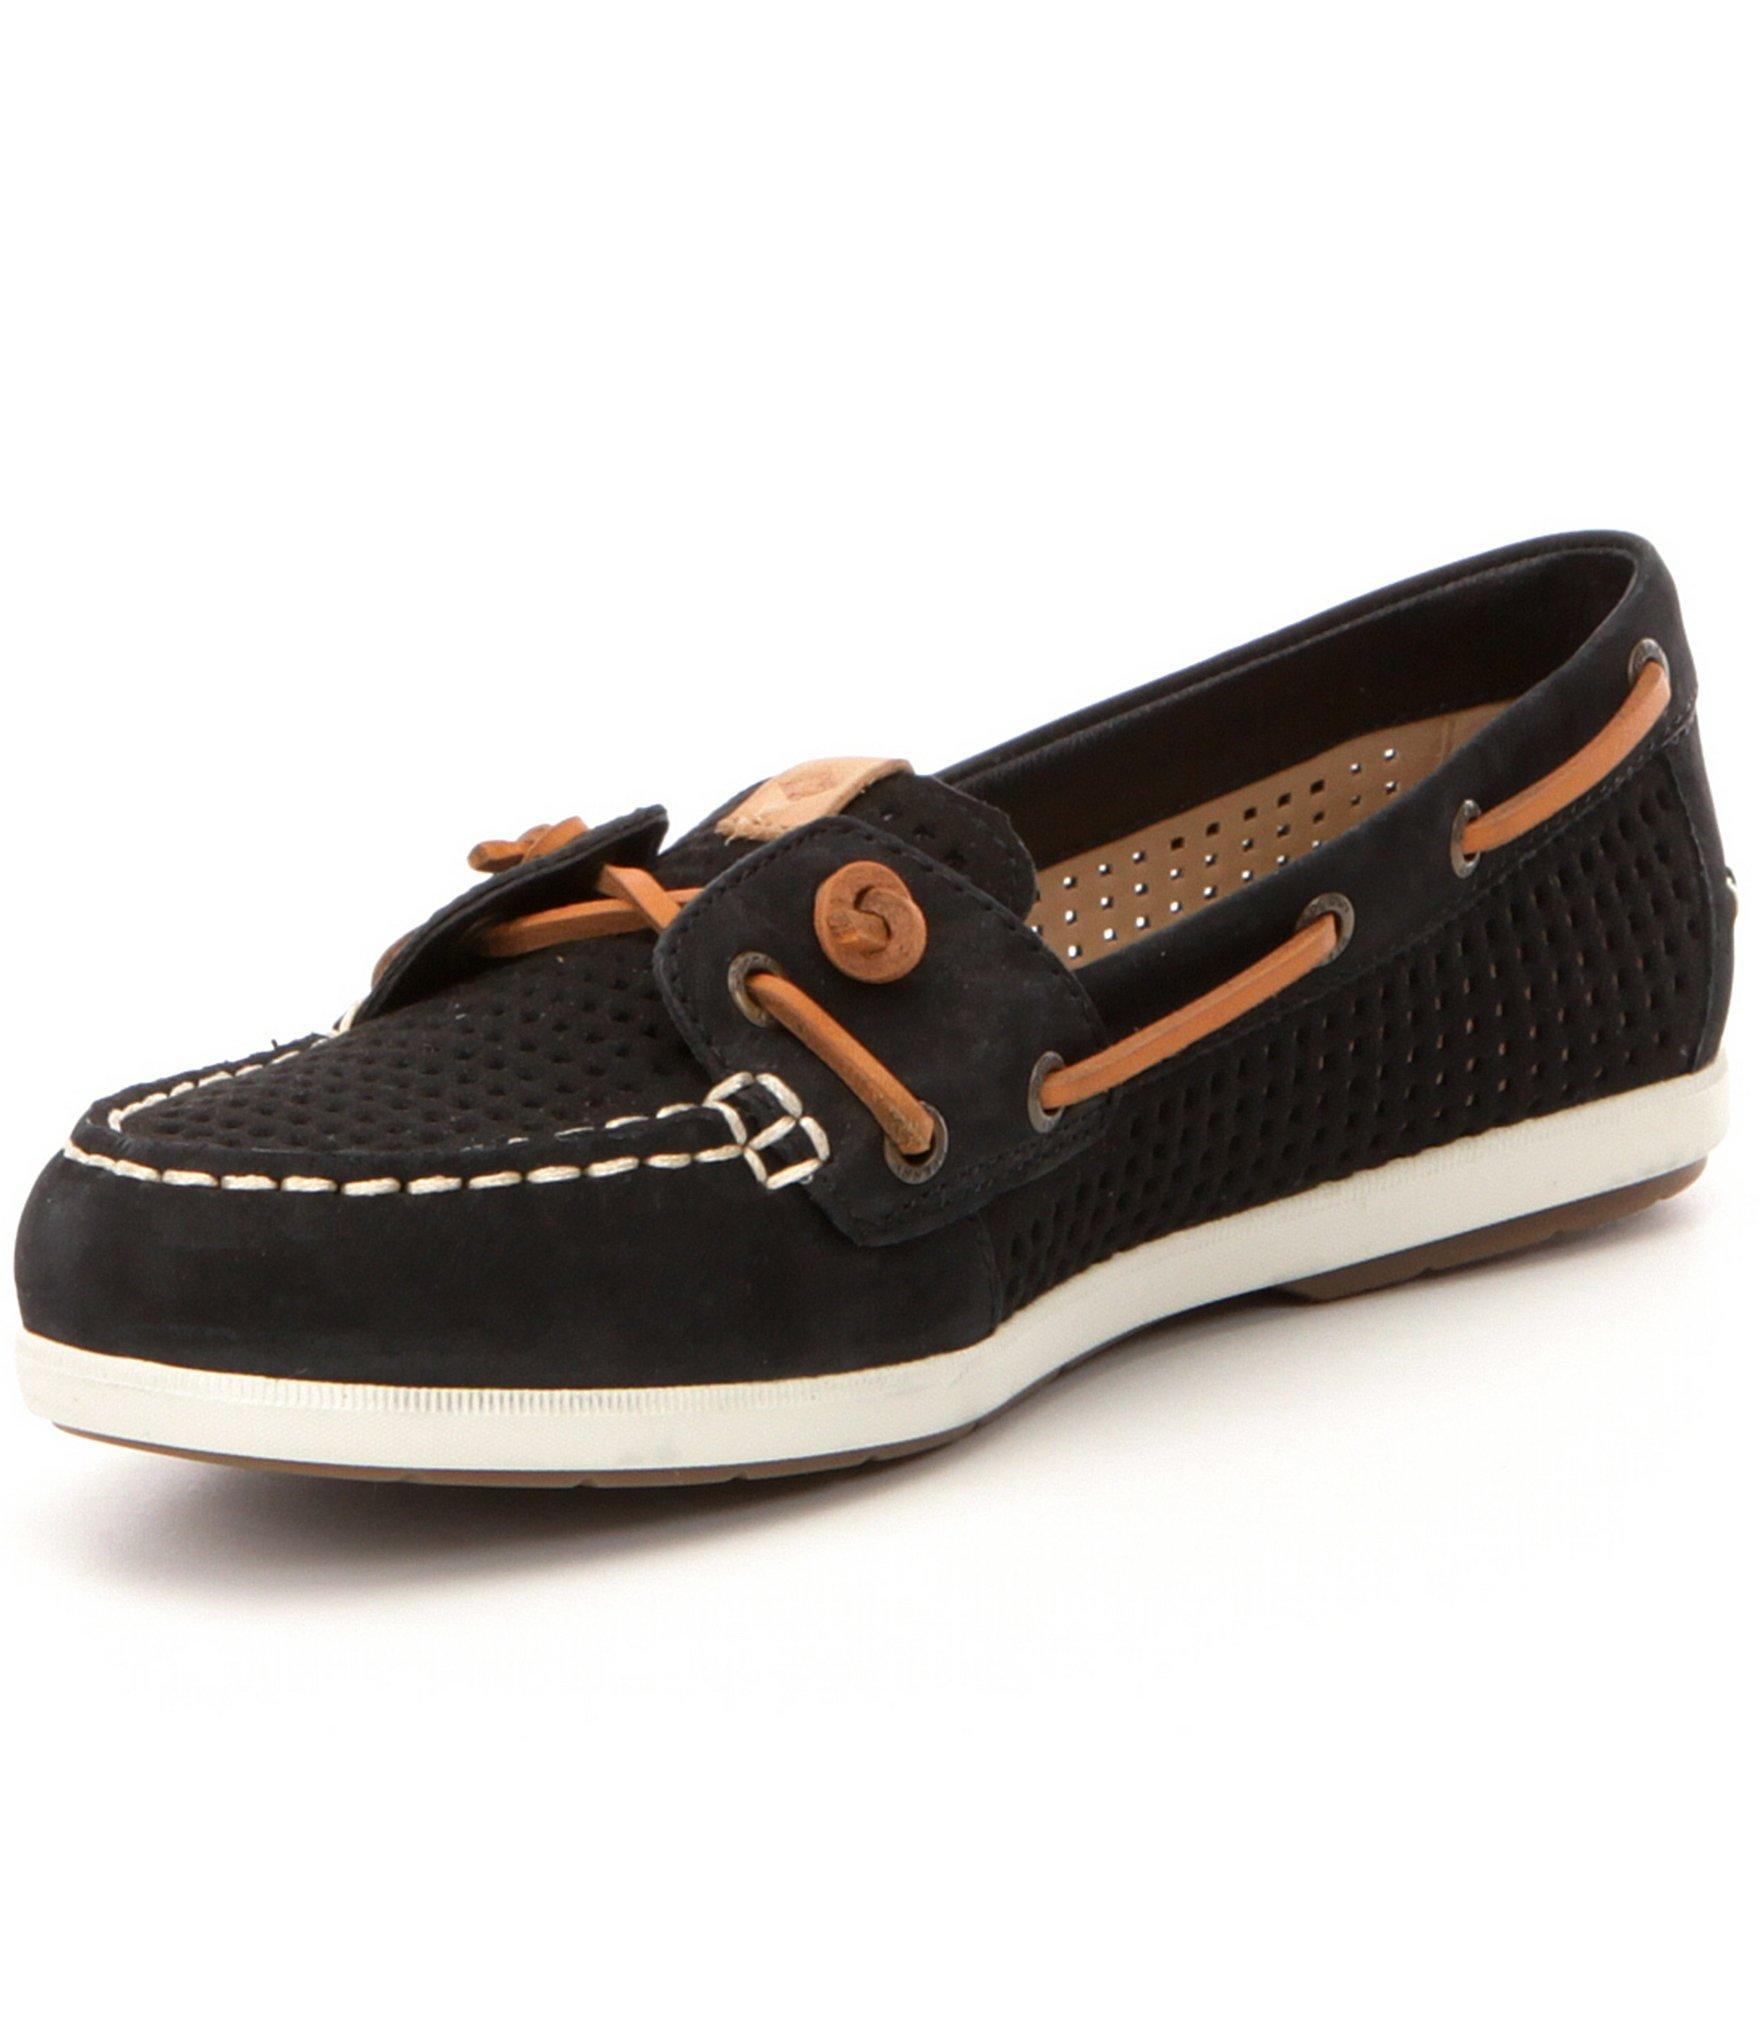 Sperry Coil Ivy Perforated Leather Slip On Boat Shoes